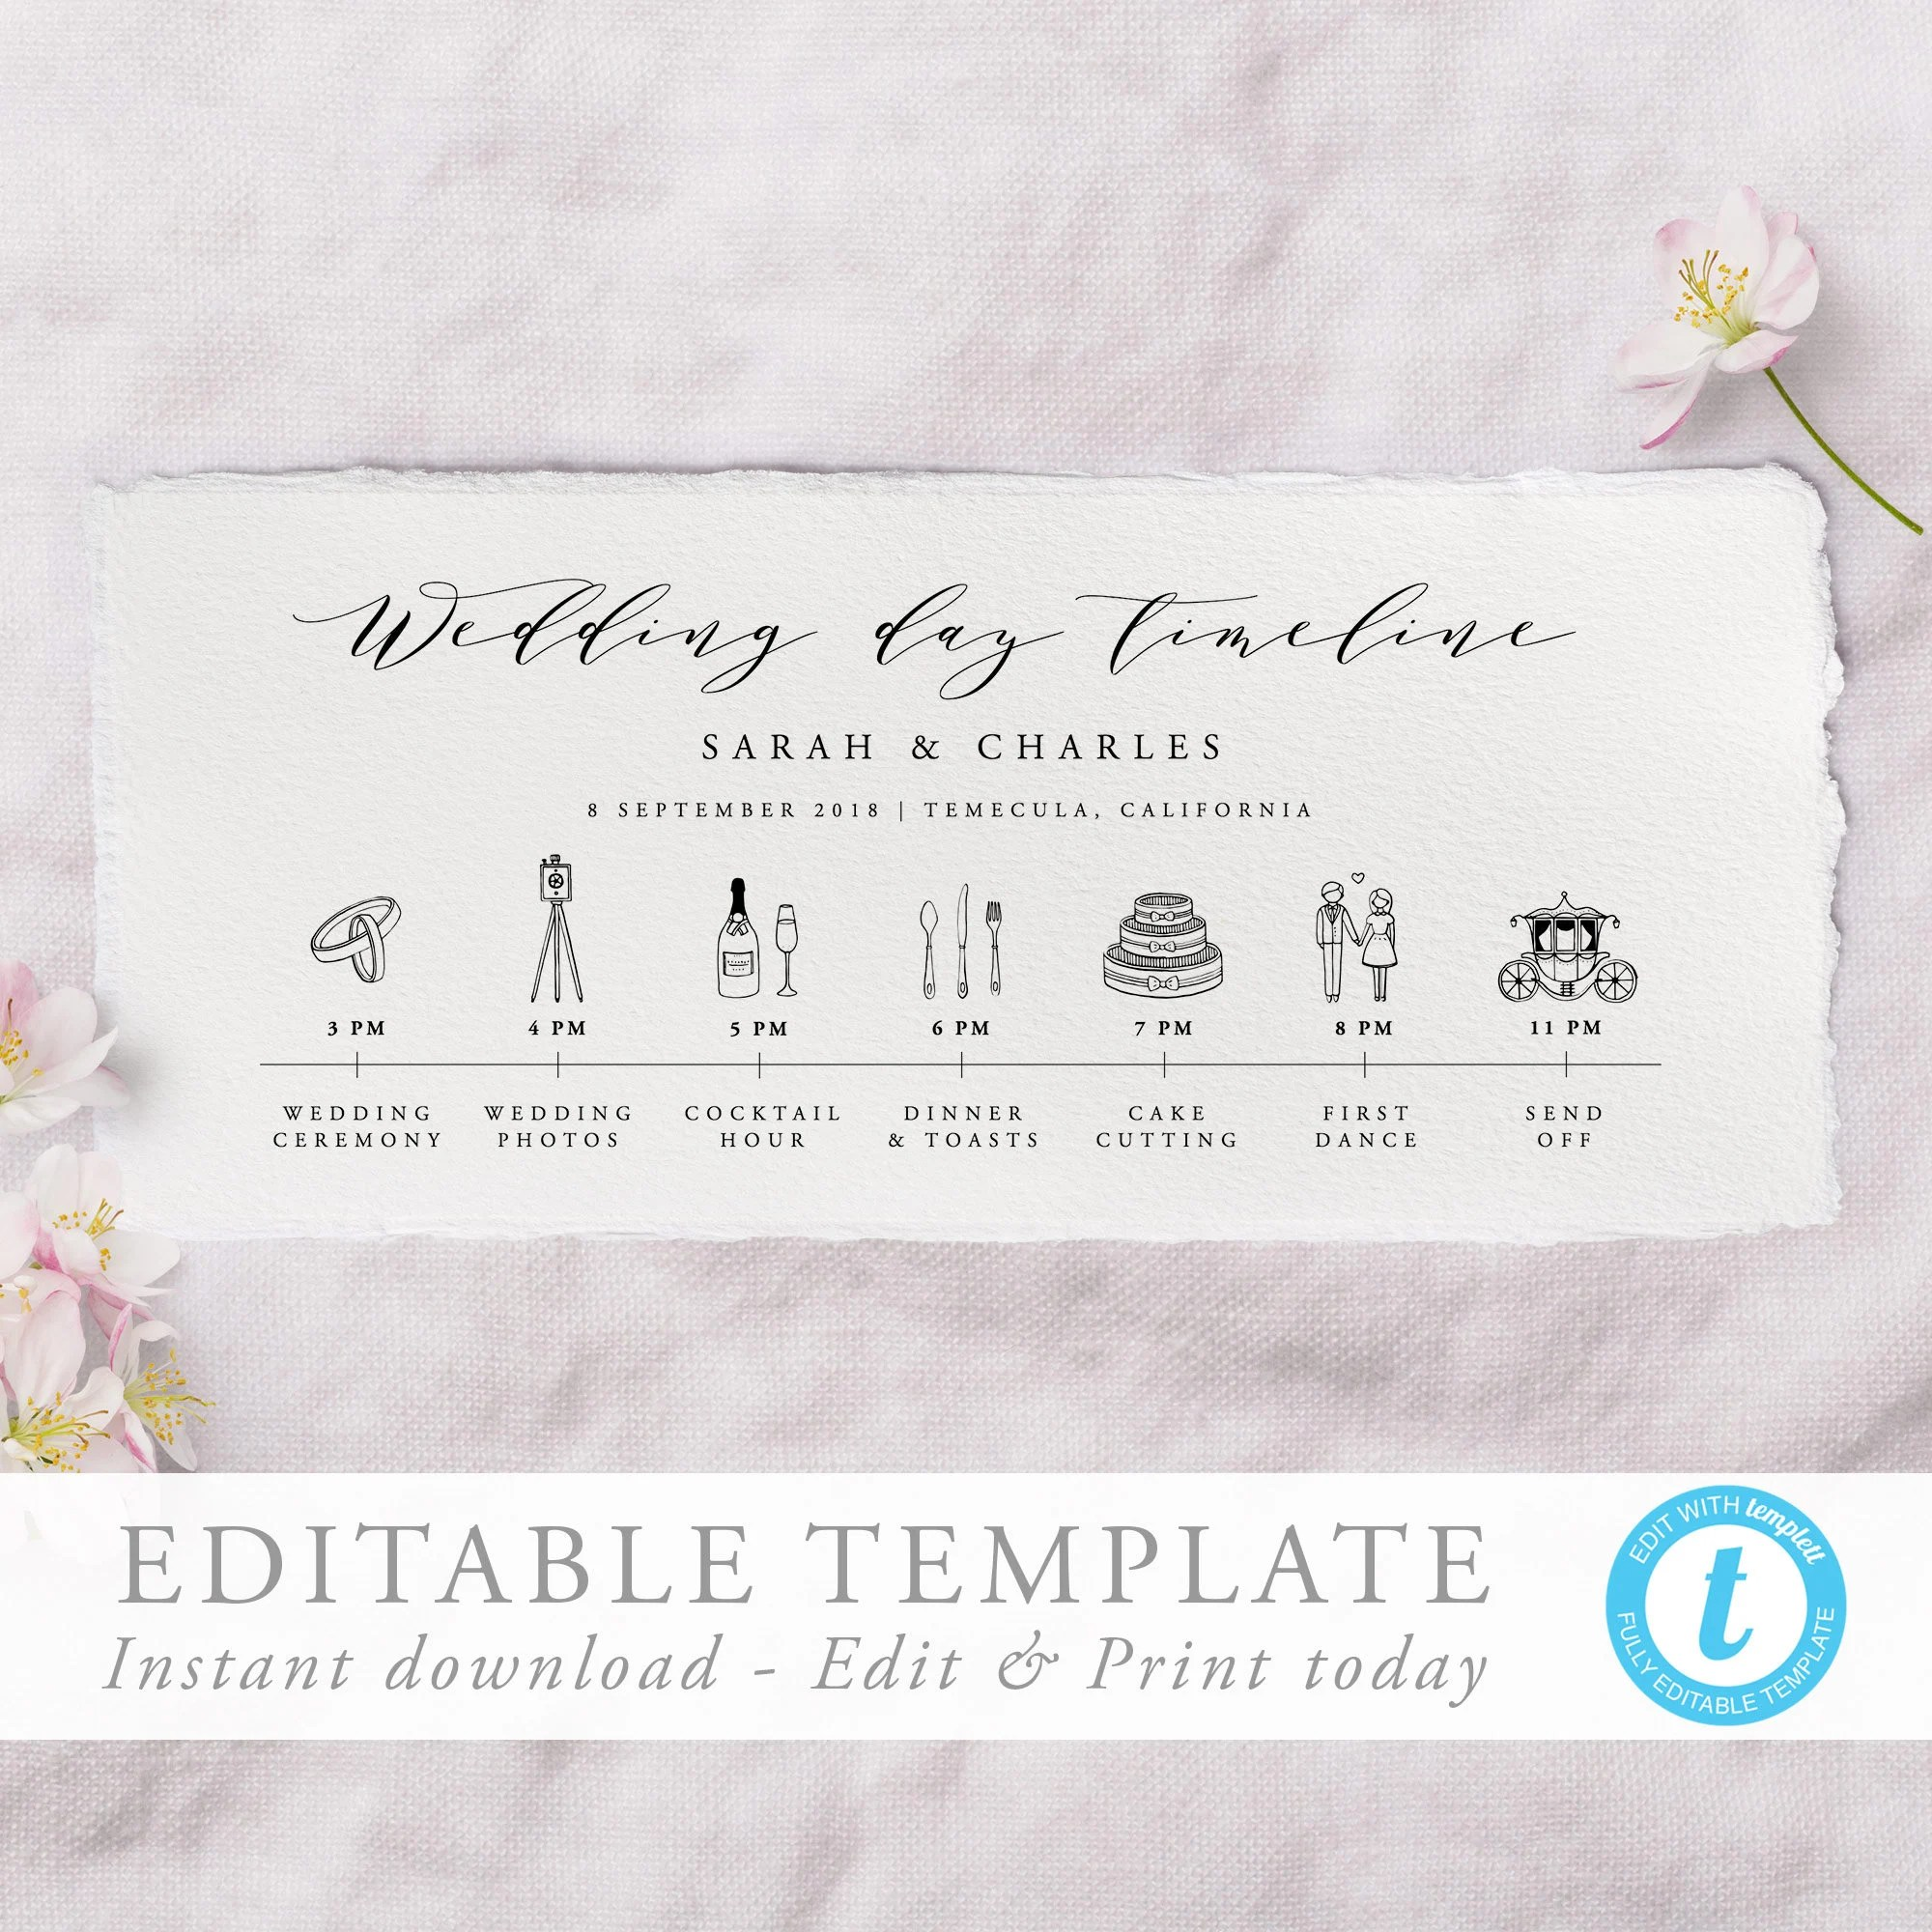 Wedding Day Timeline Template Calligraphy Order of Events Etsy